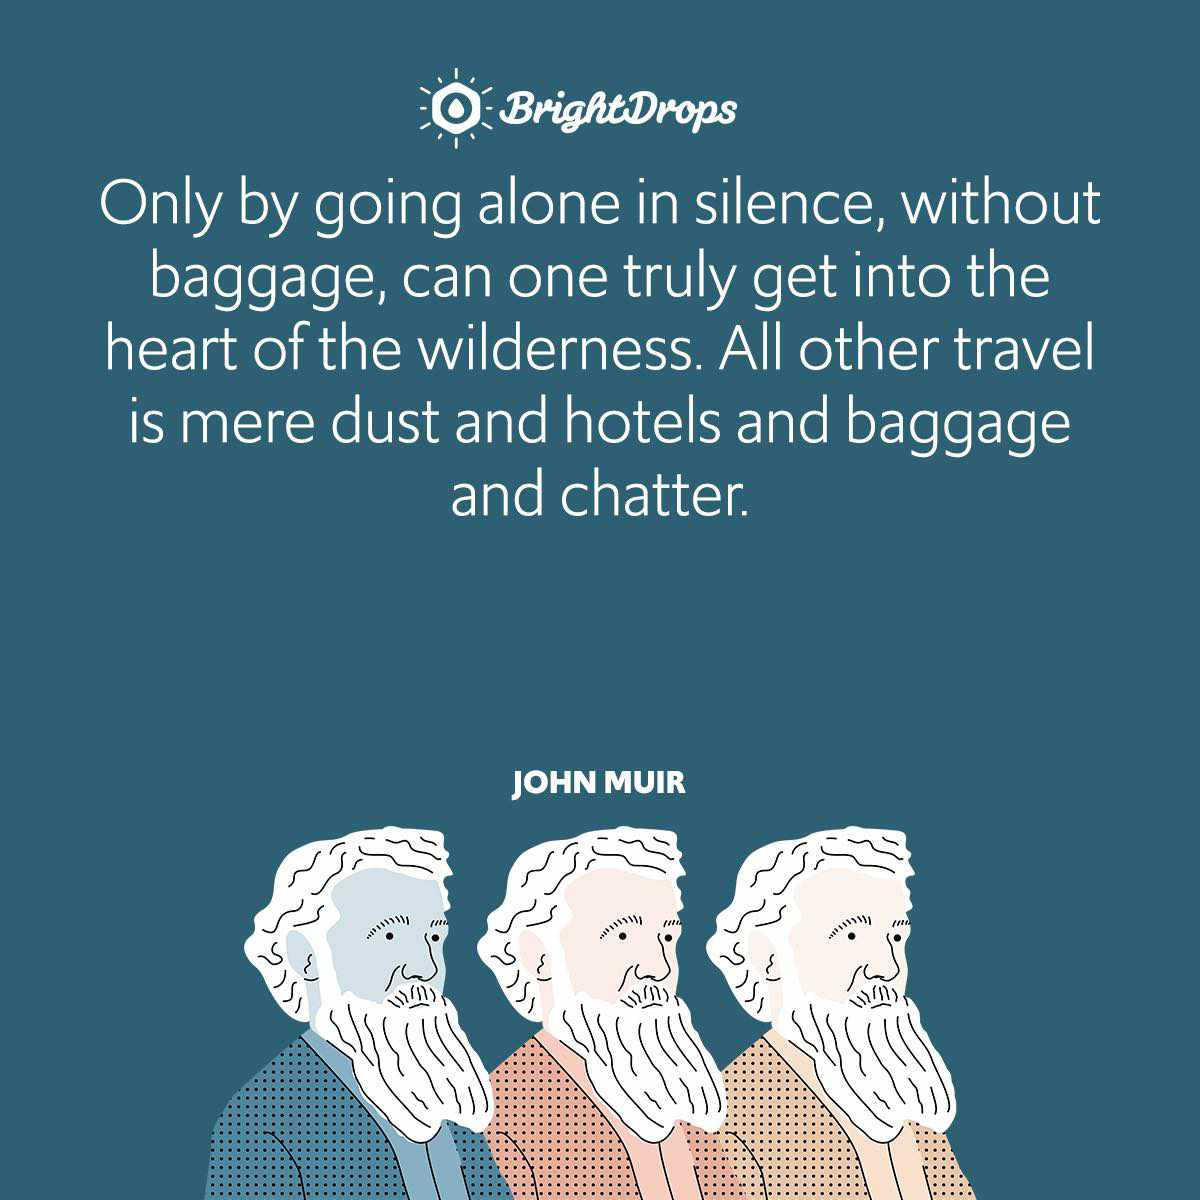 Only by going alone in silence, without baggage, can one truly get into the heart of the wilderness. All other travel is mere dust and hotels and baggage and chatter.